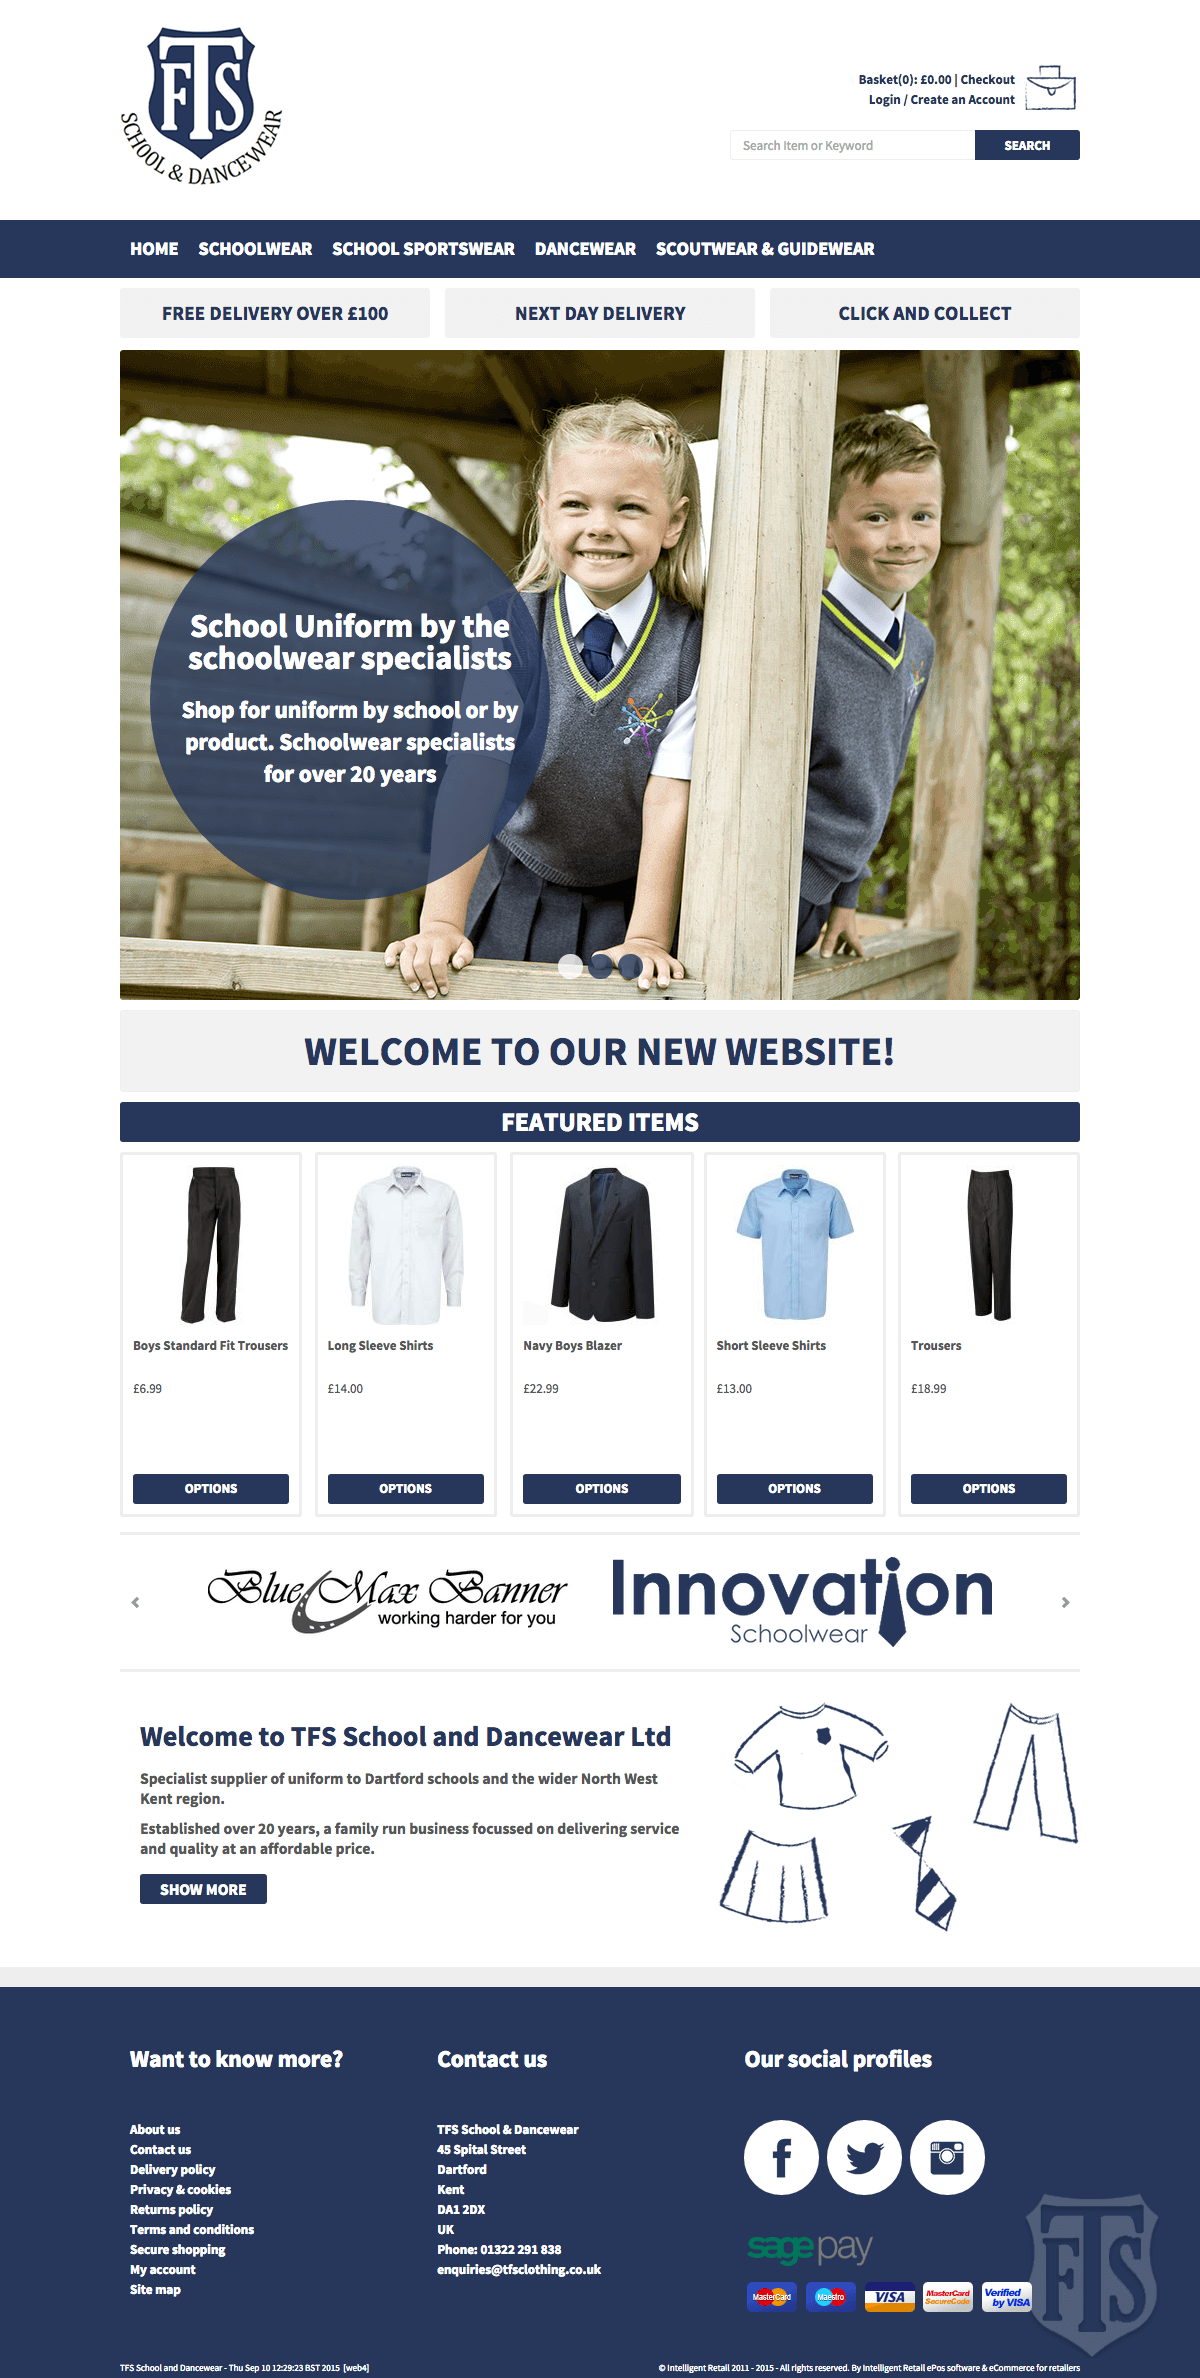 TFS Schoolwear - Home page